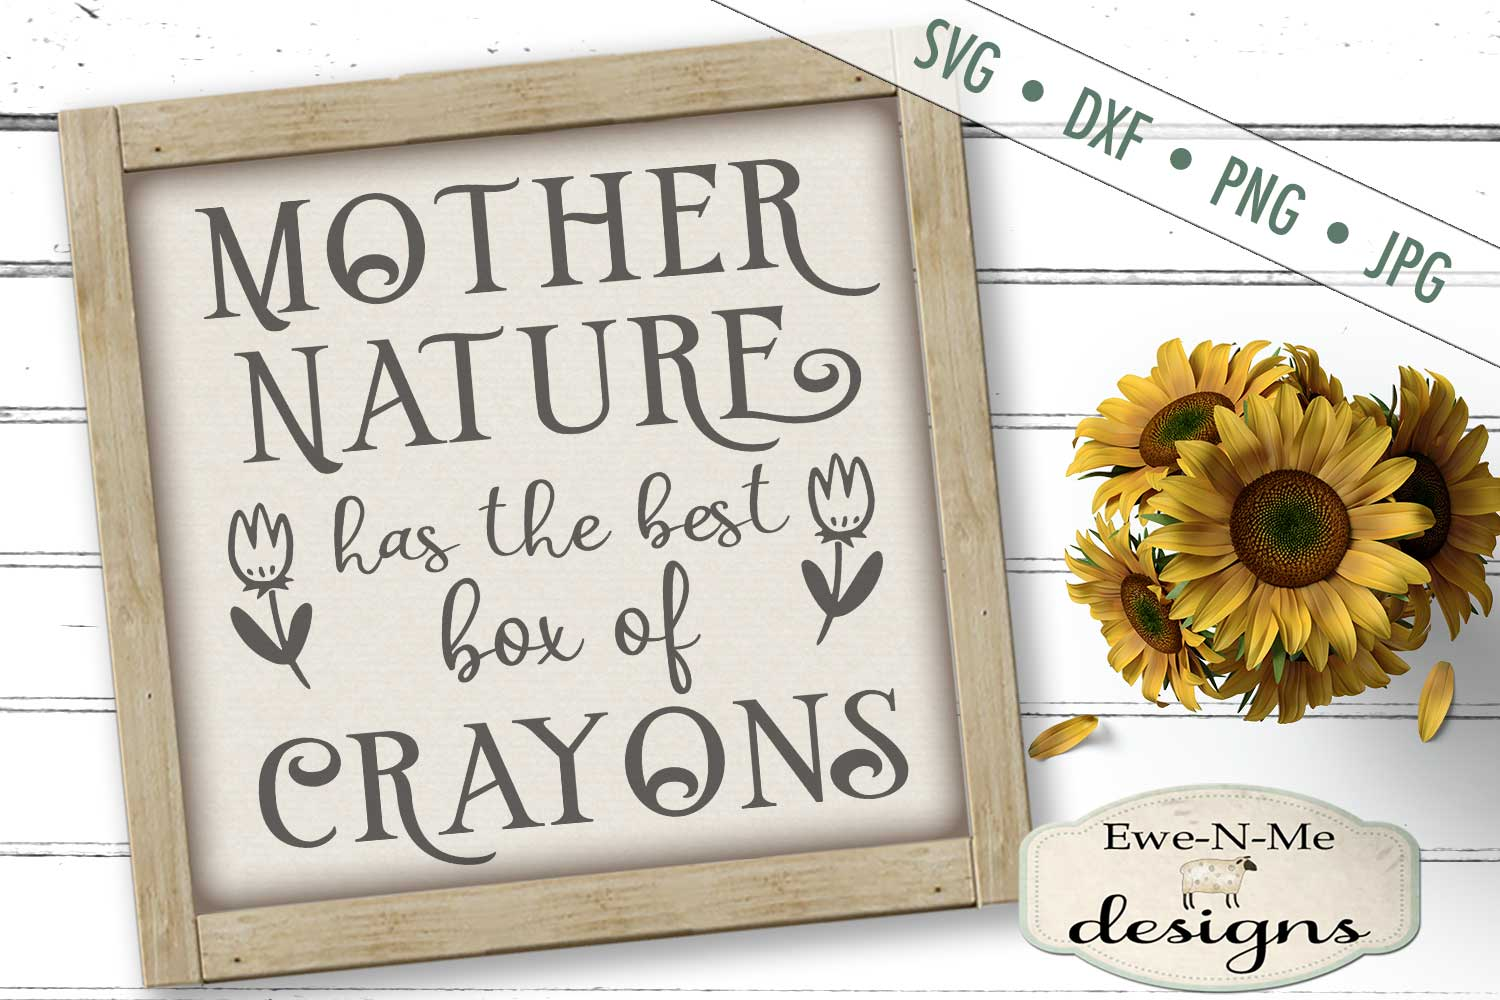 Mother Nature Has Best Box of Crayons - Gardening SVG example image 1